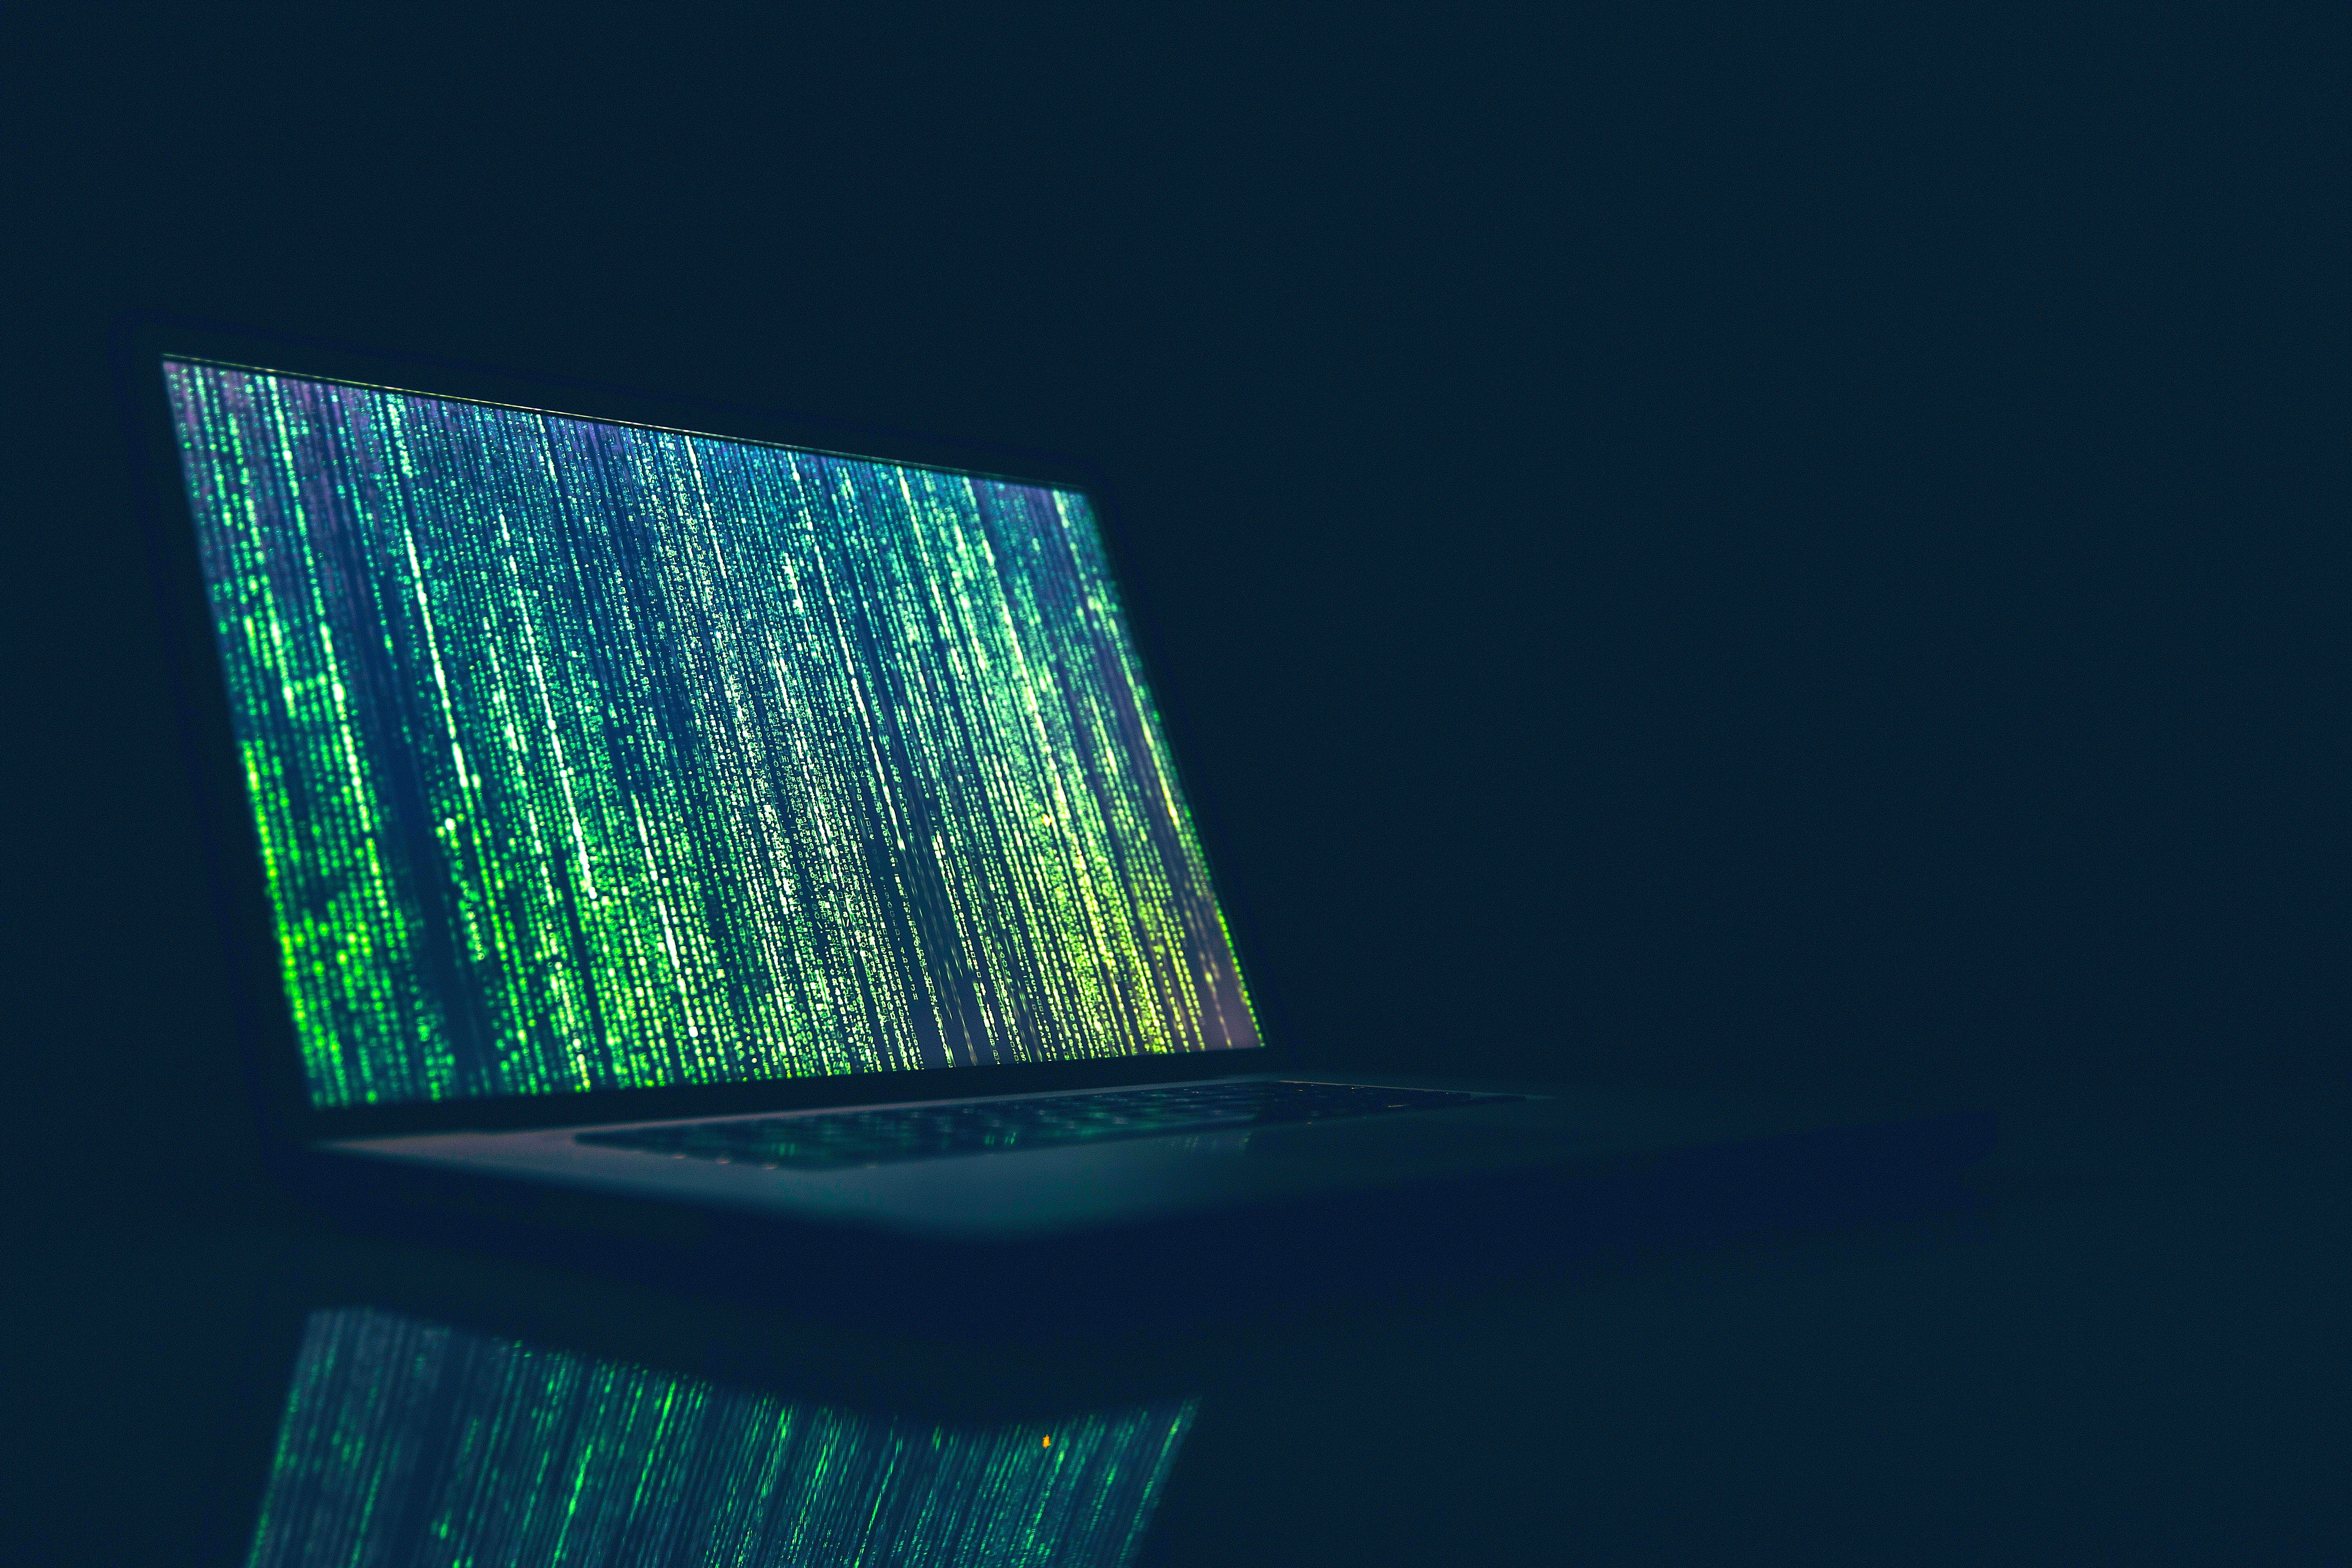 Cyber Security Laptop